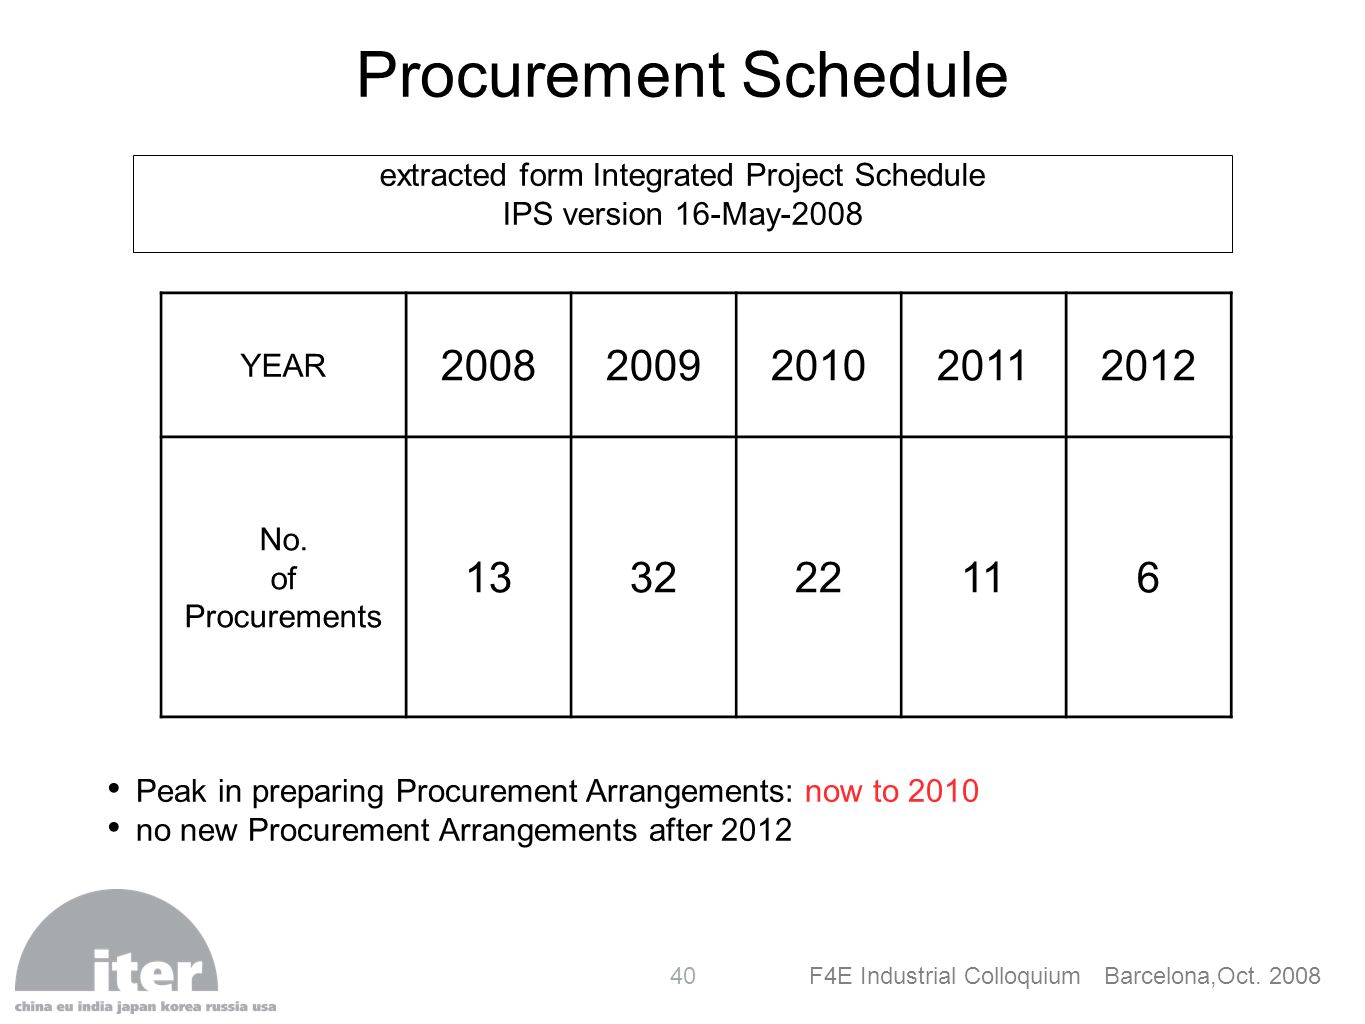 extracted form Integrated Project Schedule